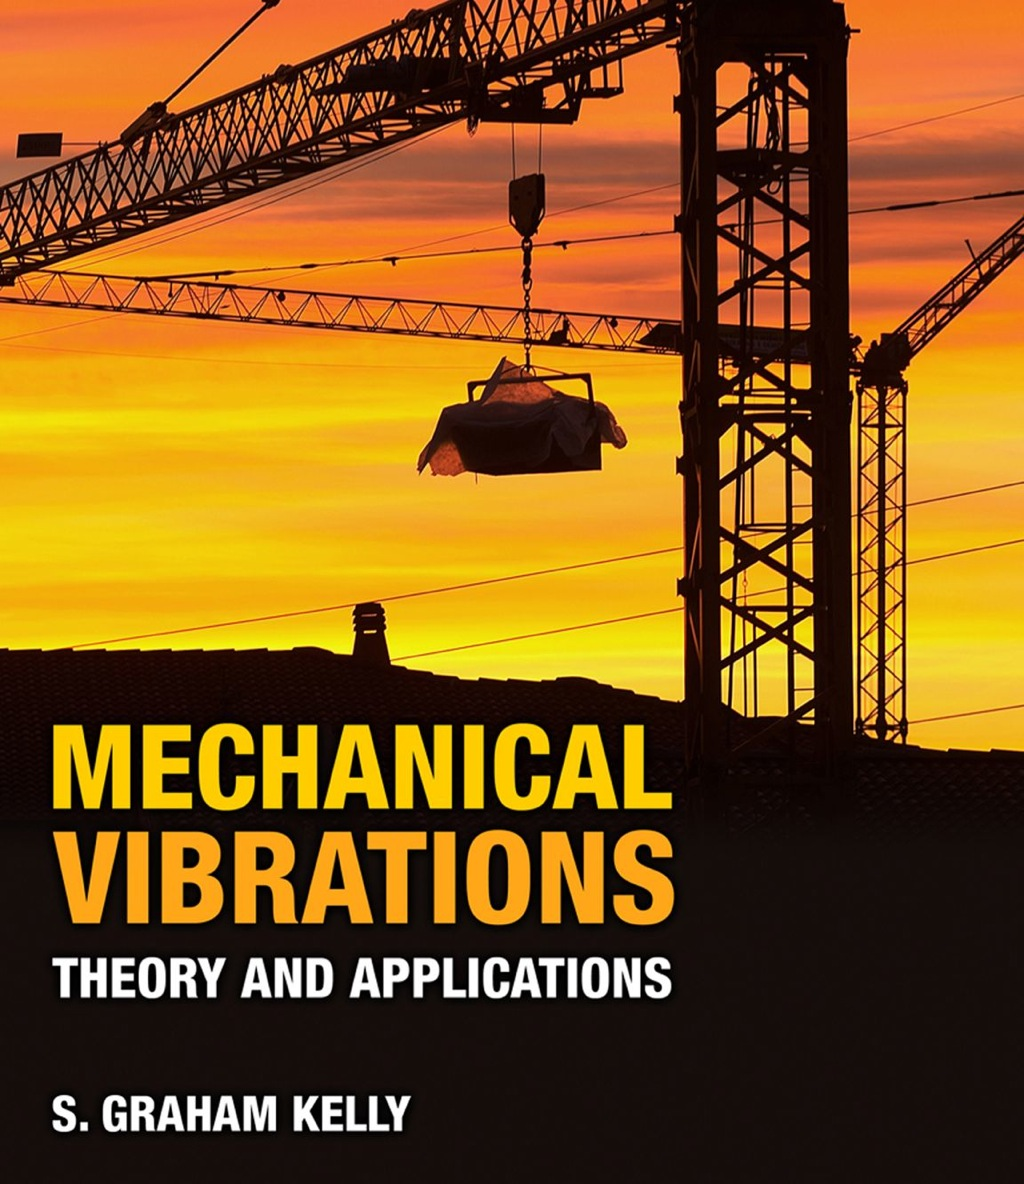 Mechanical Vibrations: Theory and Applications (ebook) eBooks